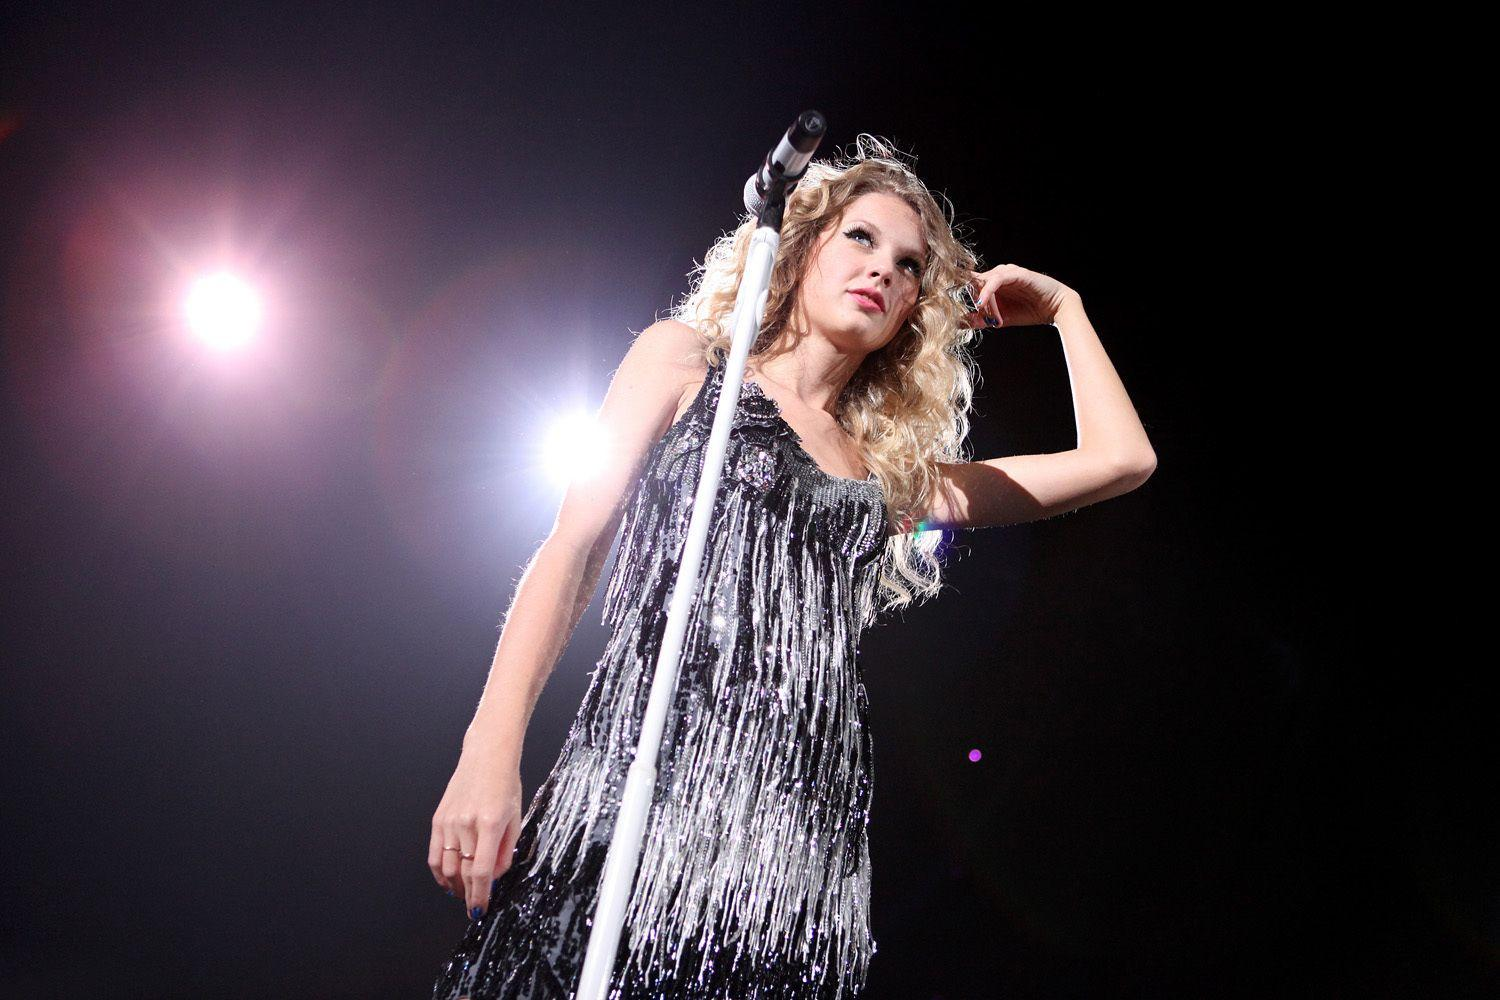 Taylor Swift Fearless Wallpapers Wallpaper Cave